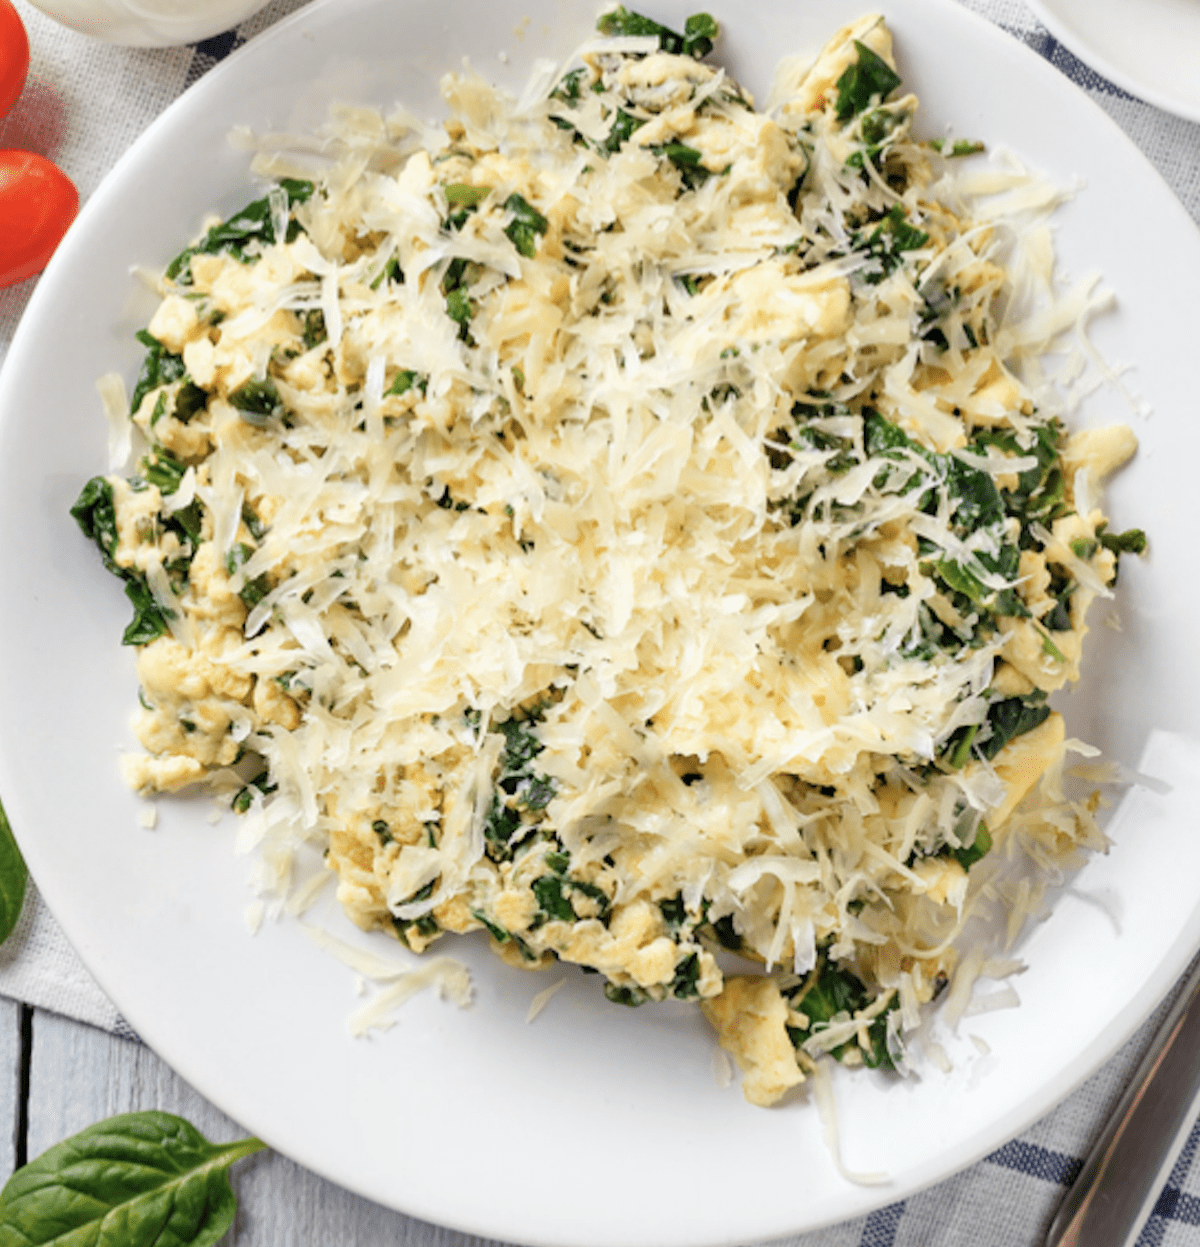 Scrambled Eggs With Cheese On Top